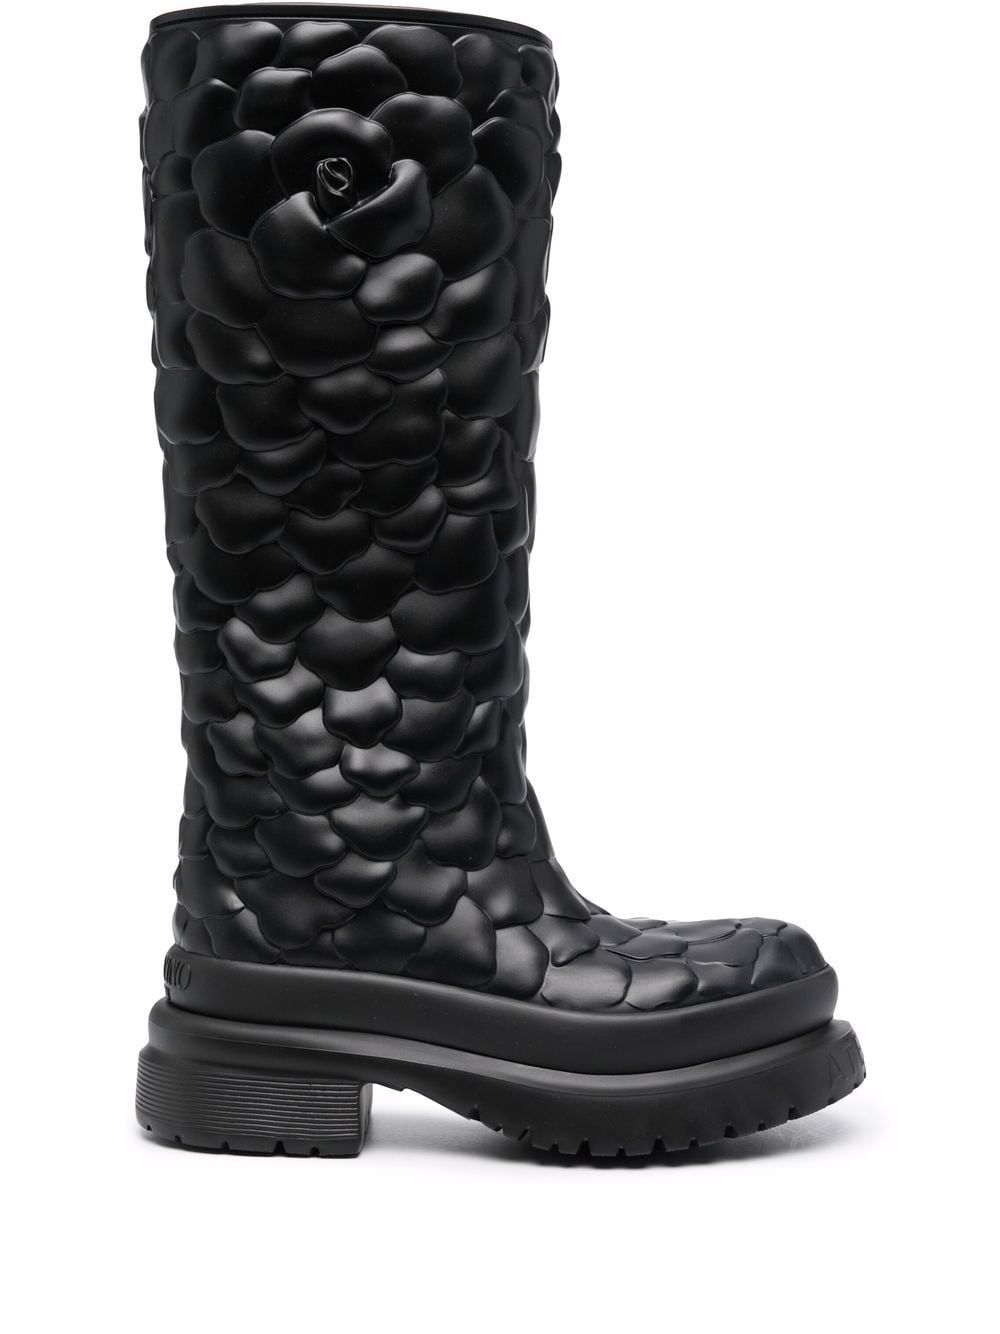 Atelier rose edition 03 boots